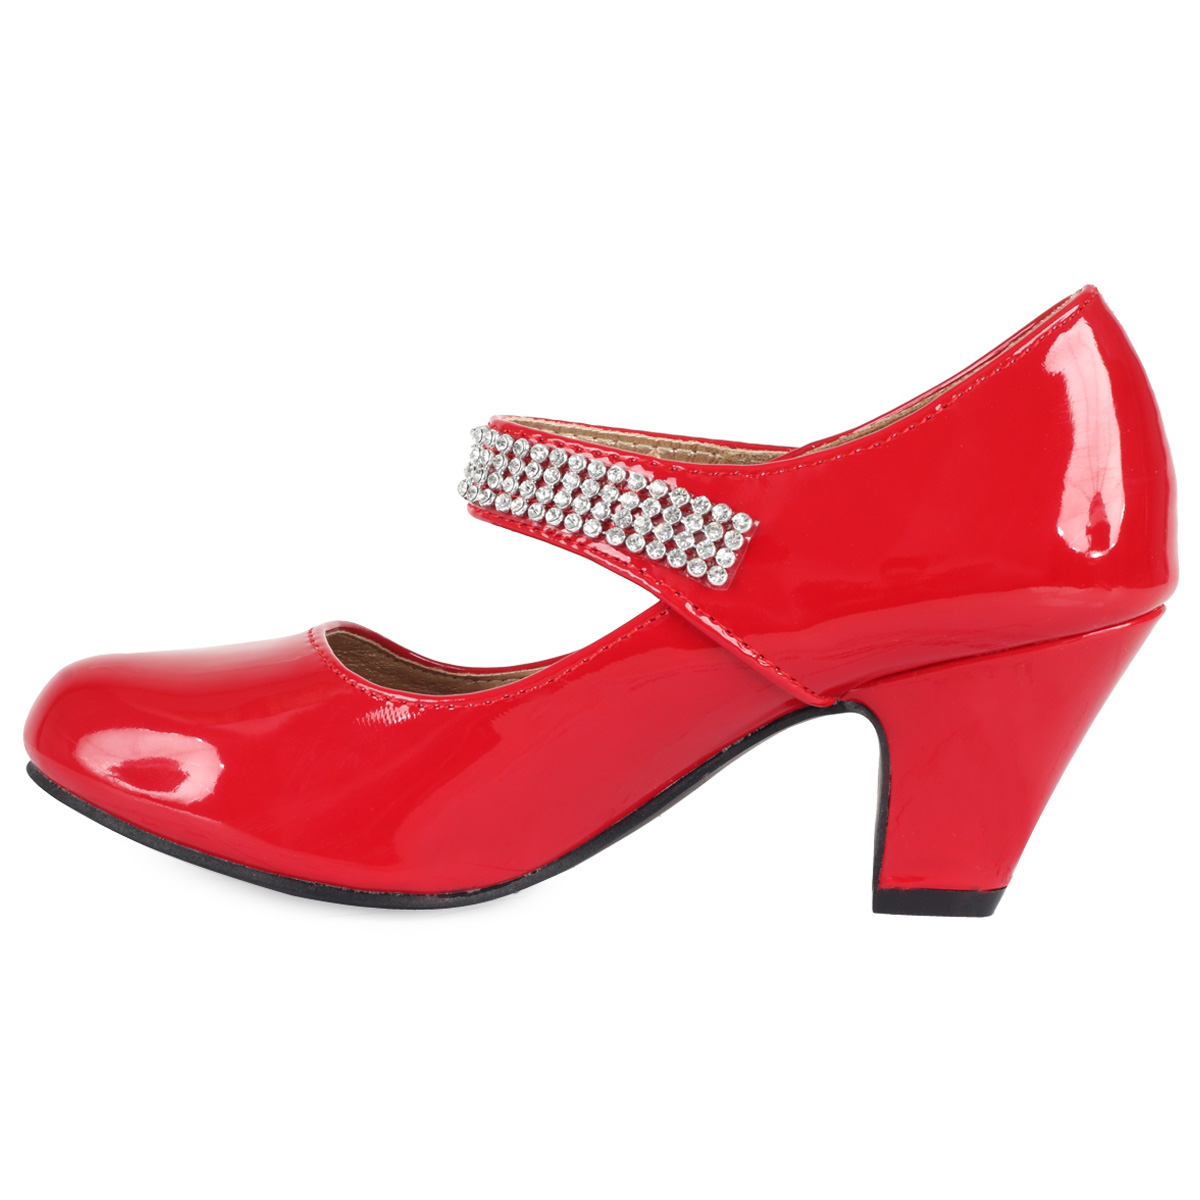 High Heels Shoes For Kids Size 13 Kids patent red girls smallHigh Heels Shoes For Kids Size 13